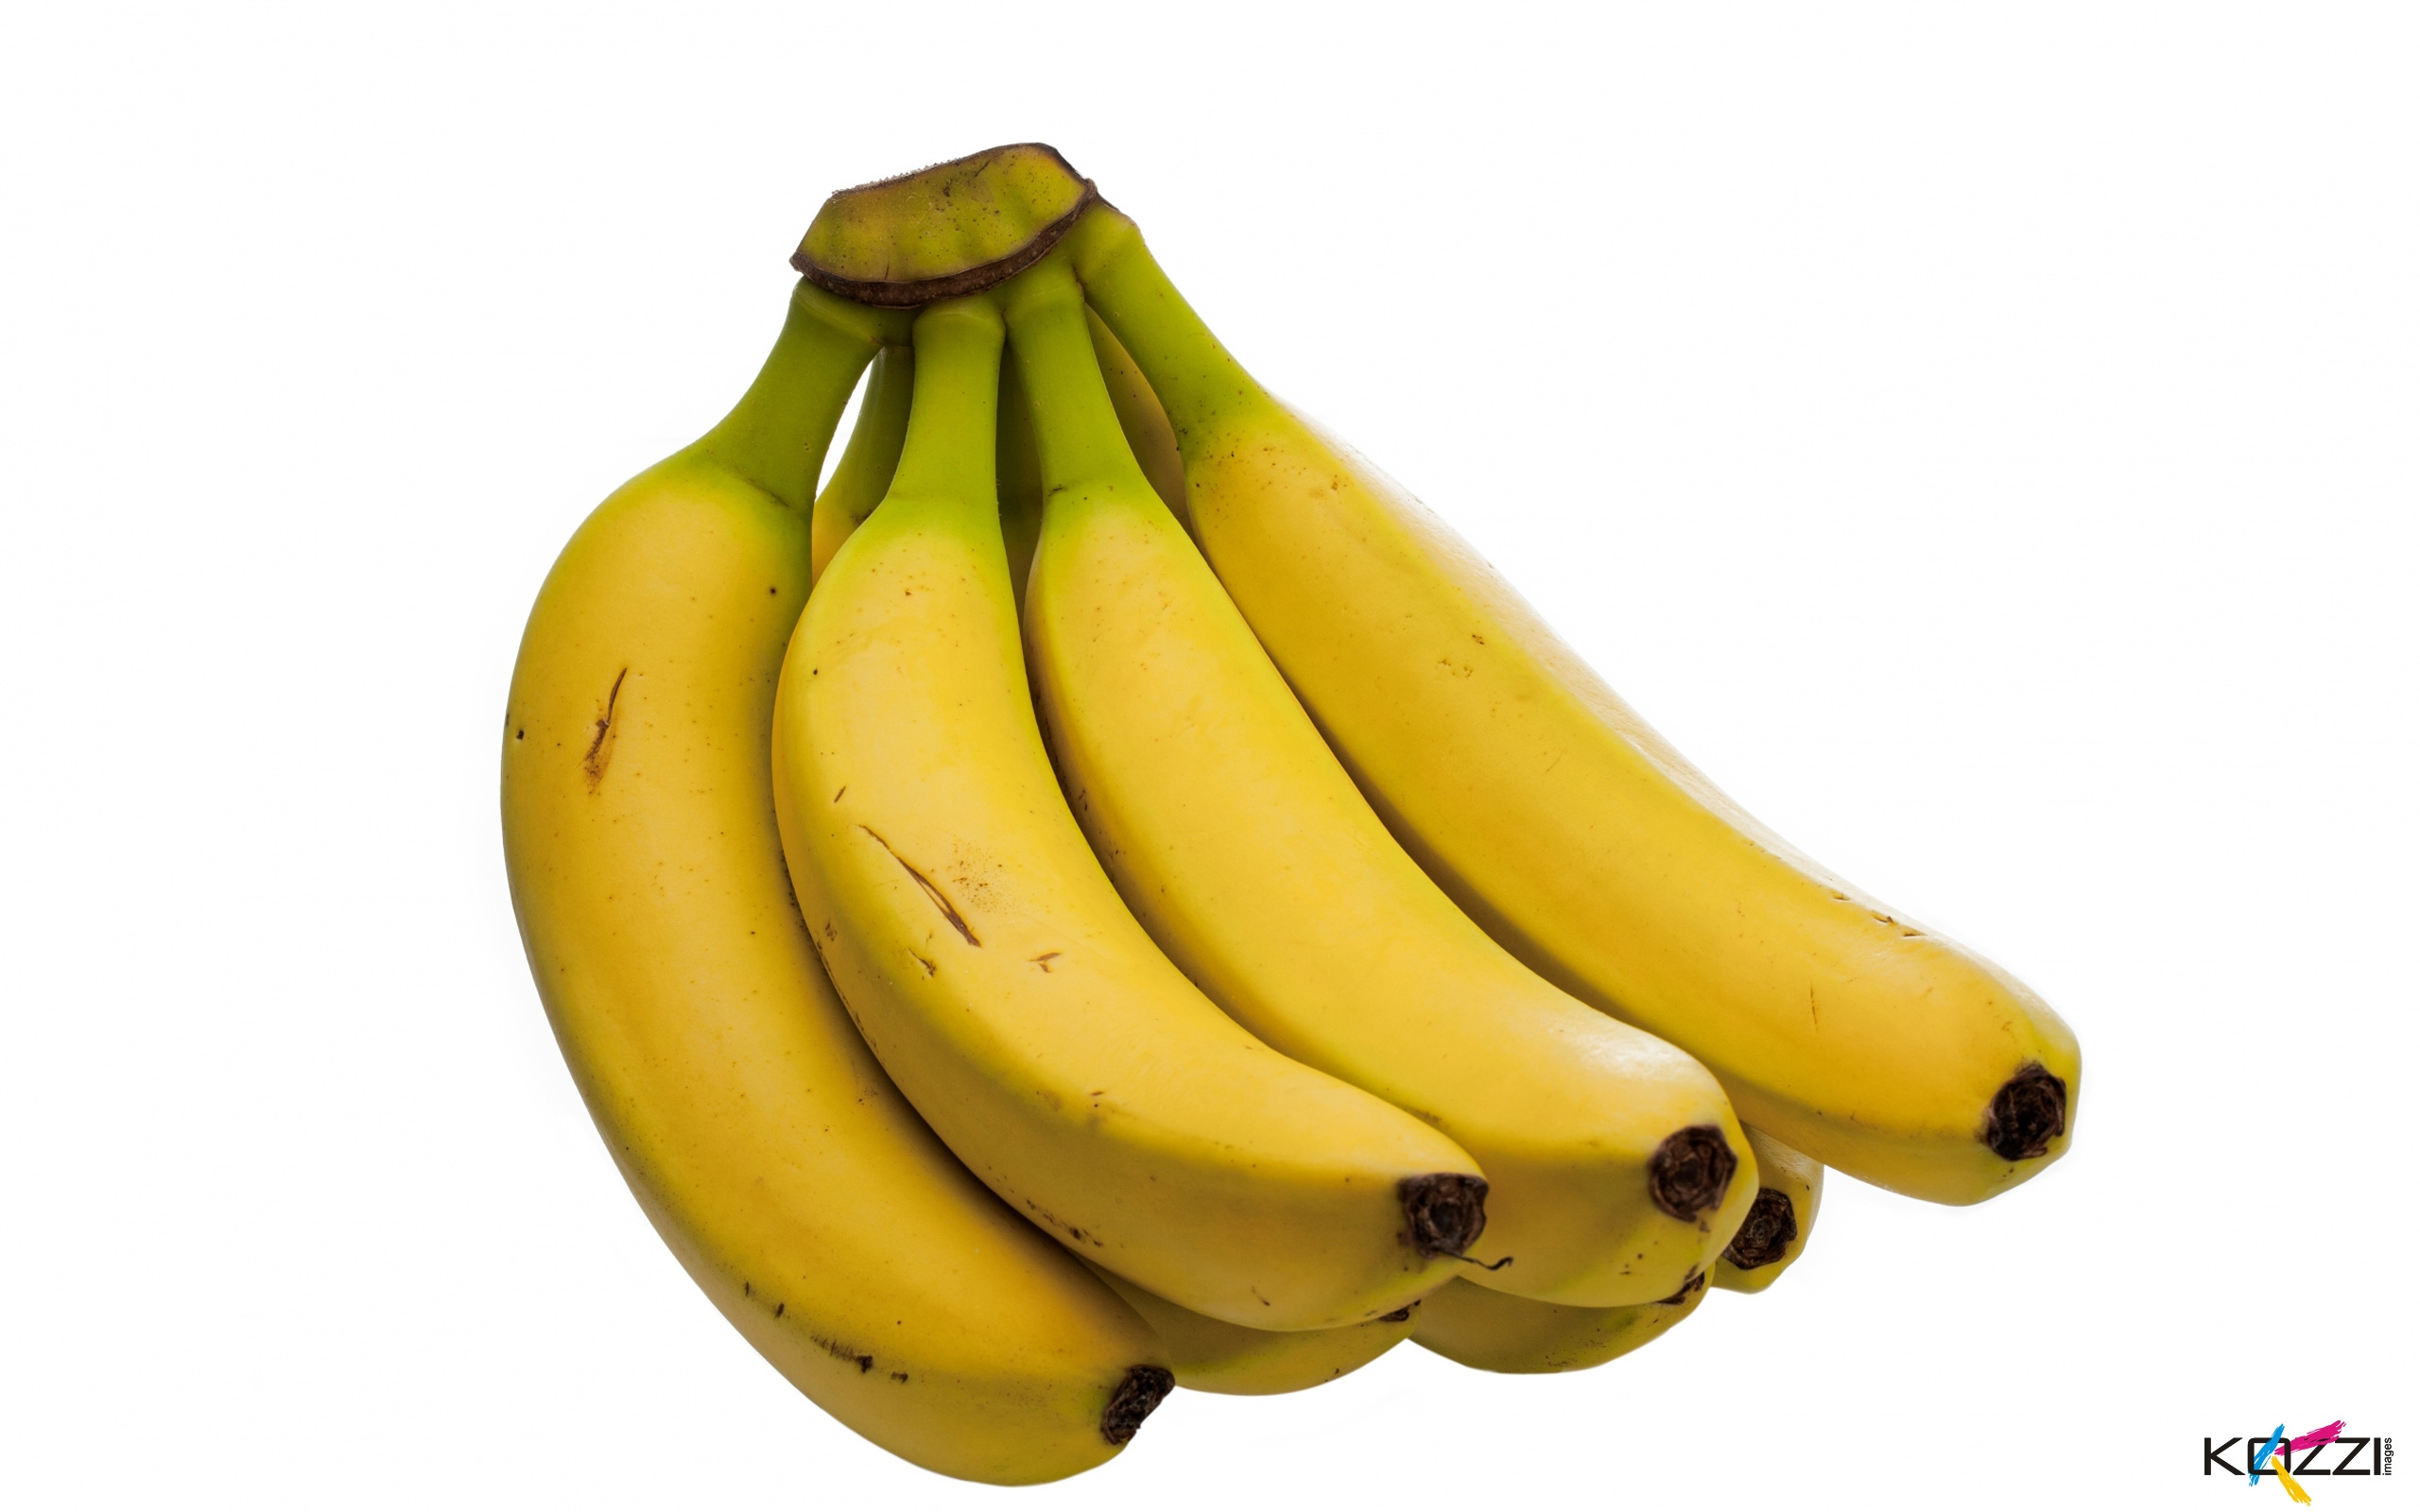 Free Banana Wallpaper